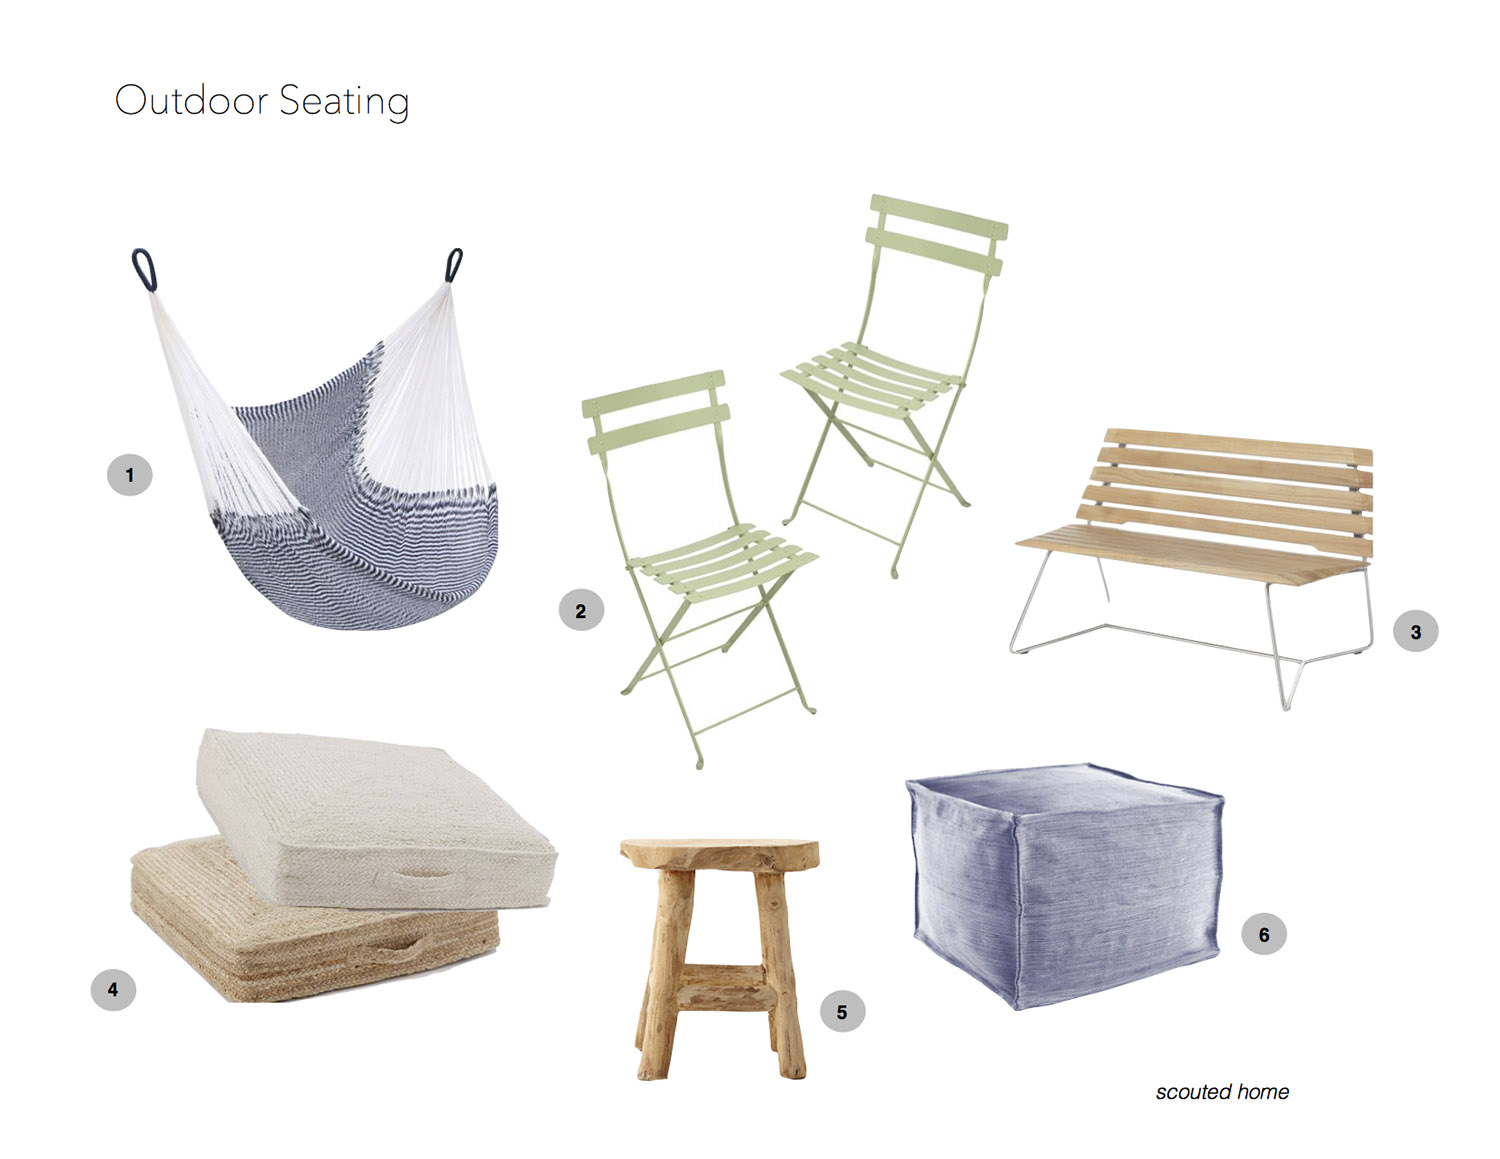 scouted_outdoorseating.jpg